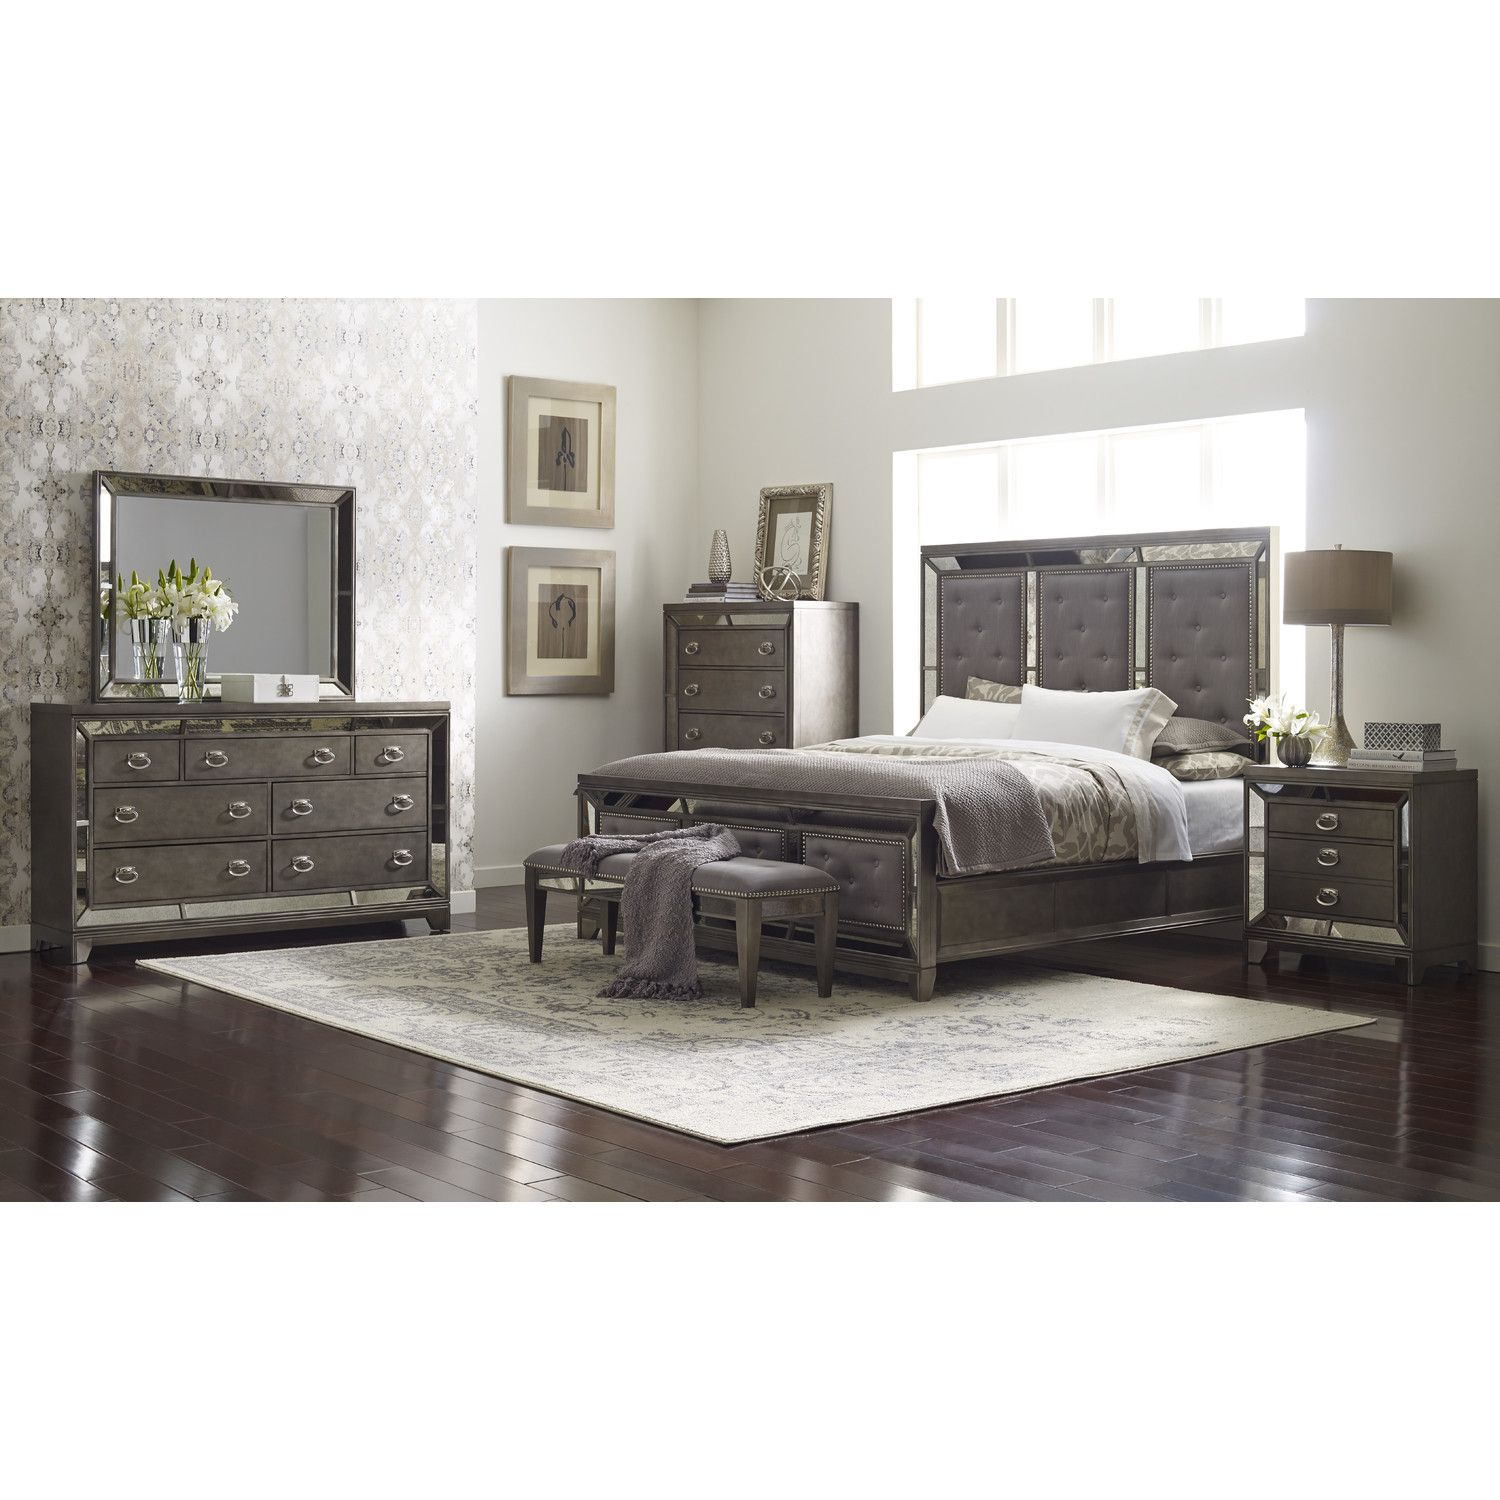 Shop Wayfair For Bedroom Sets To Match Every Style And Budget Enjoy